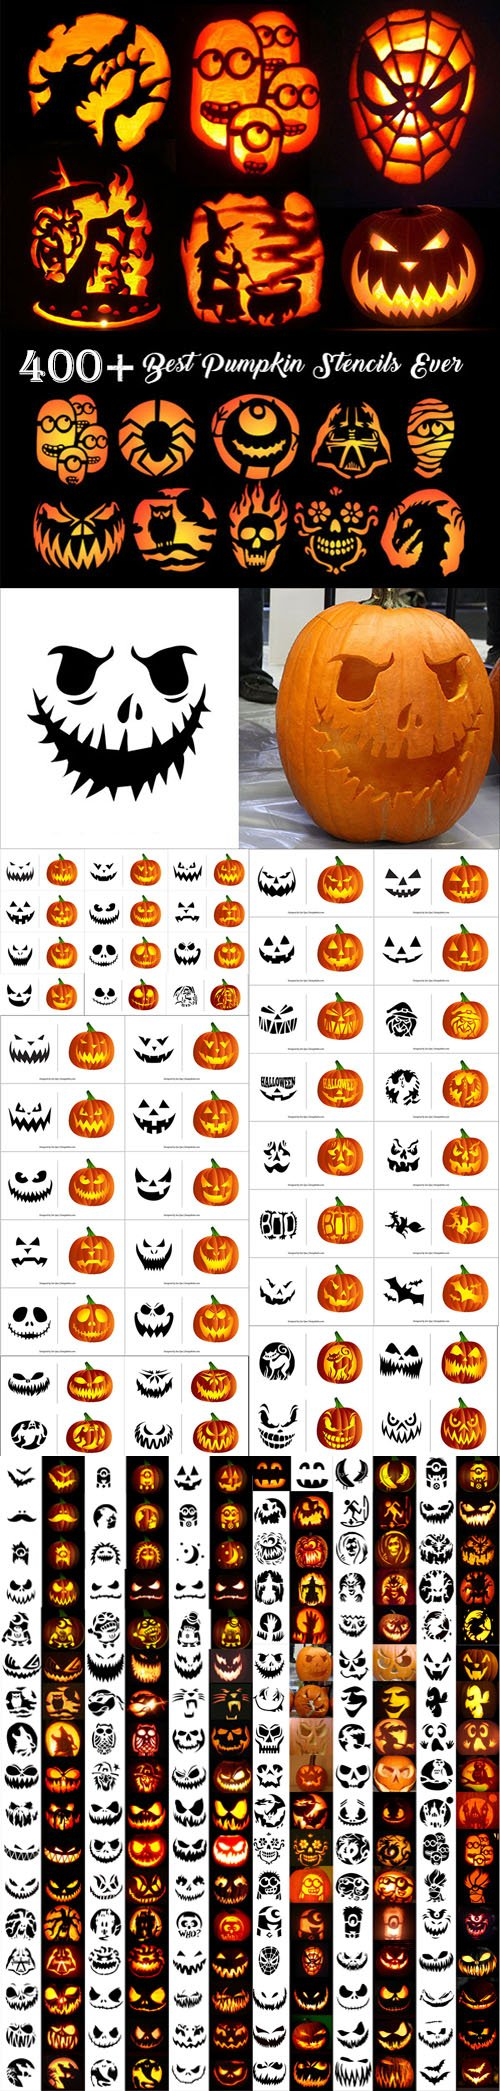 400+ Scary Halloween Pumpkin Carving Patterns in Vector [Ai/EPS/PDF]